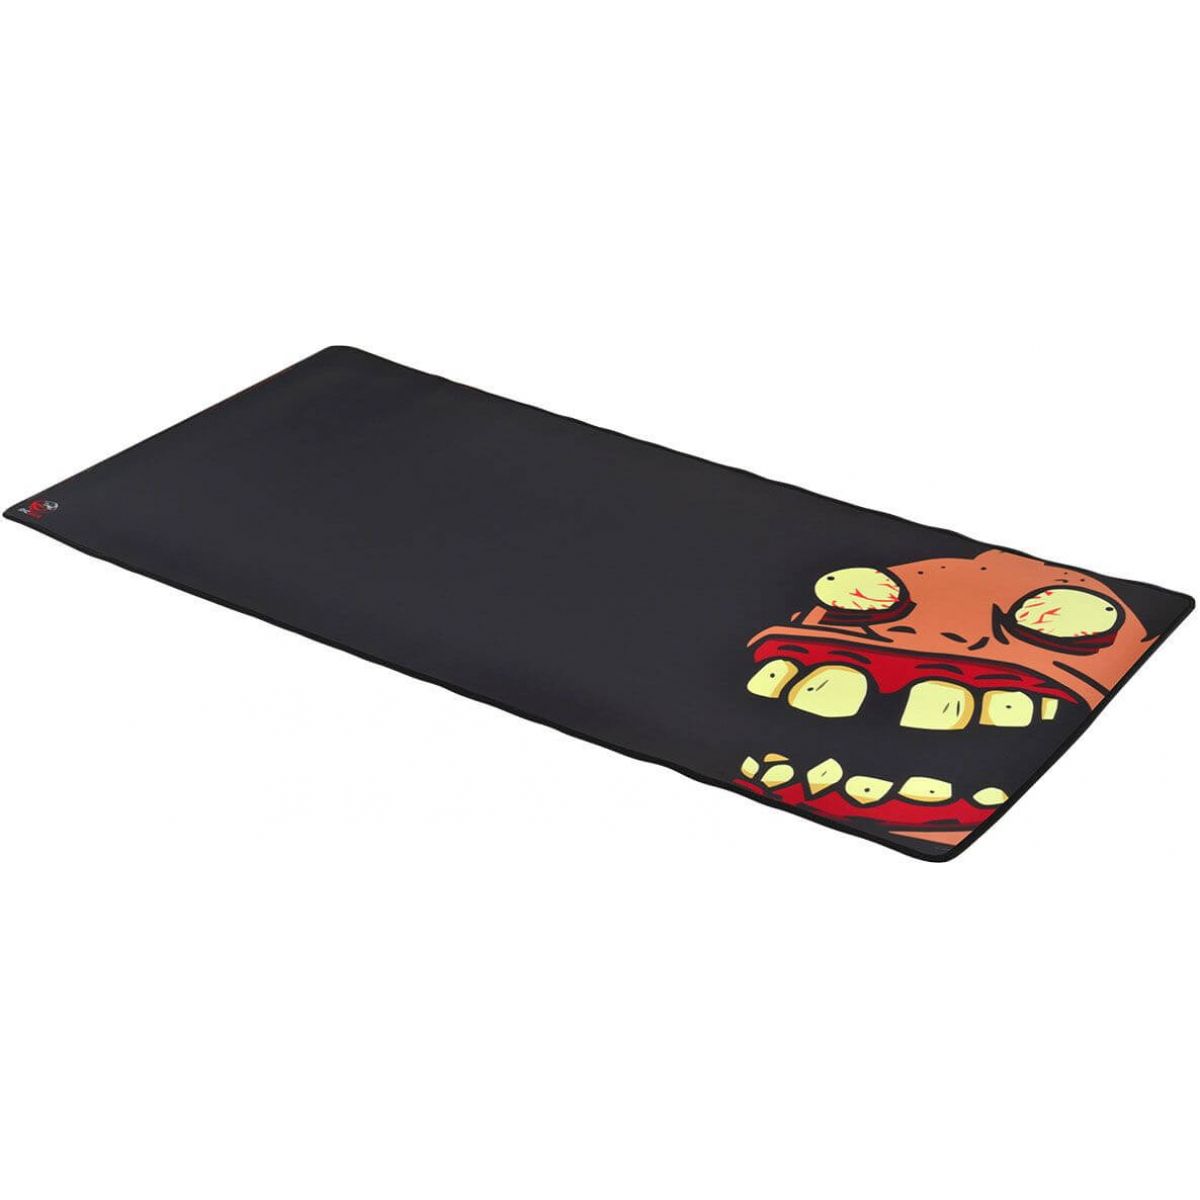 Mouse Pad Gamer PCyes Huebr Preto Extended Borda Costurada HPE90X42